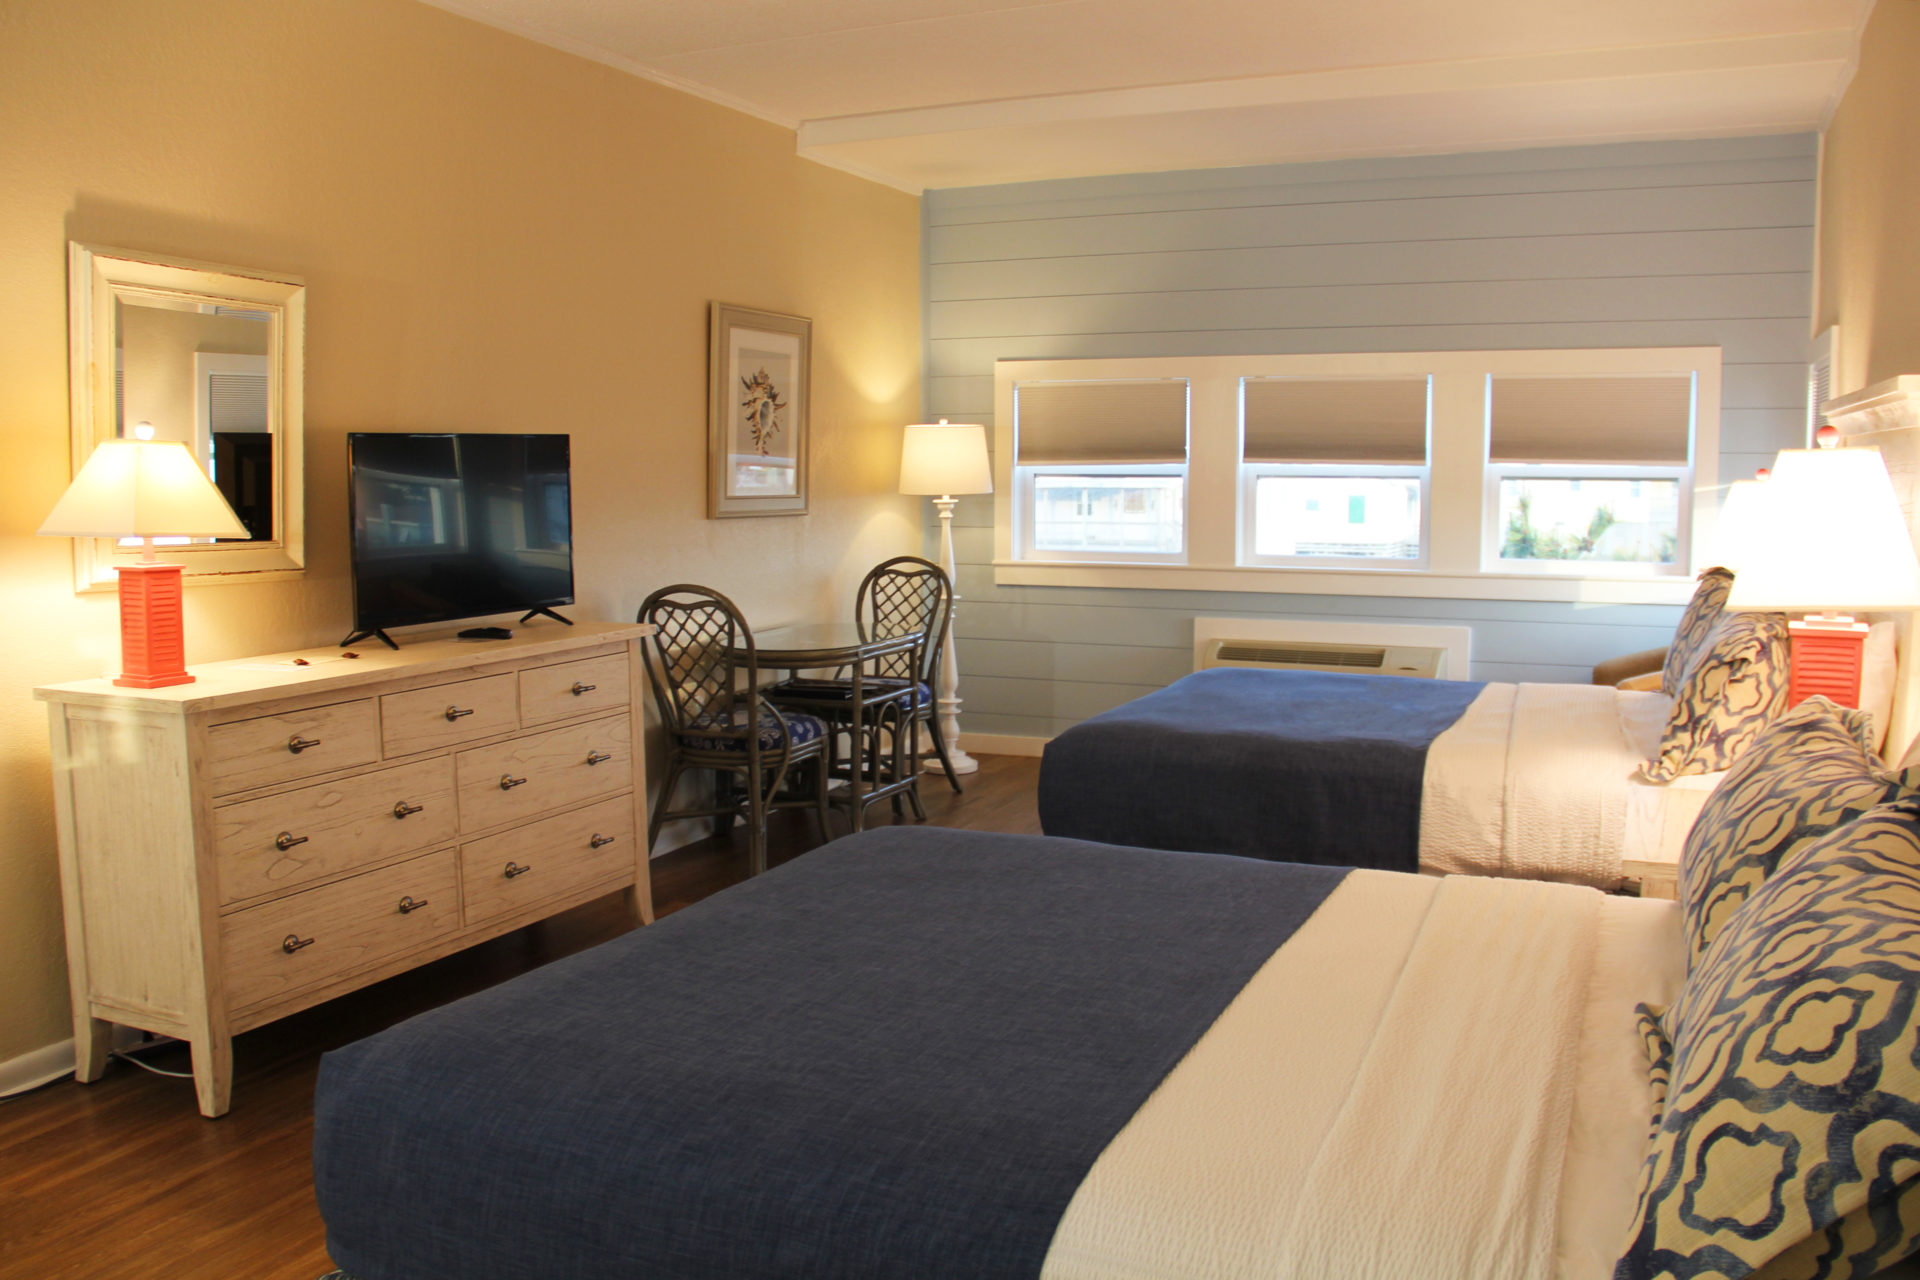 SurfSide Hotel OBX Ocean View Efficiency1